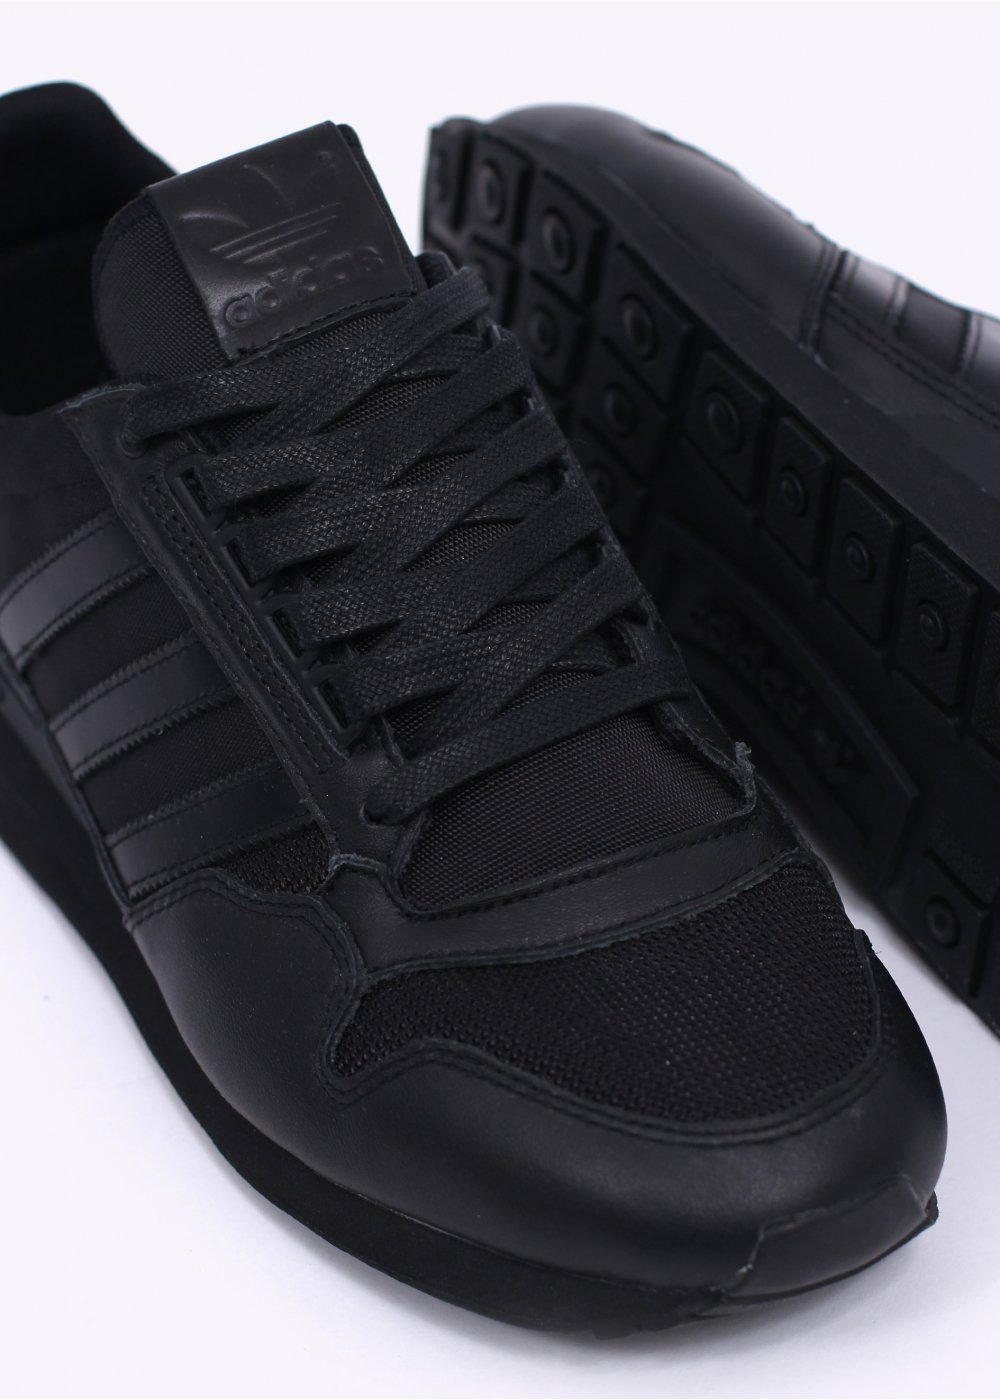 Adidas Originals Originals Top Ten Low Sneaker In Black: Adidas Originals ZX 500 OG Trainers